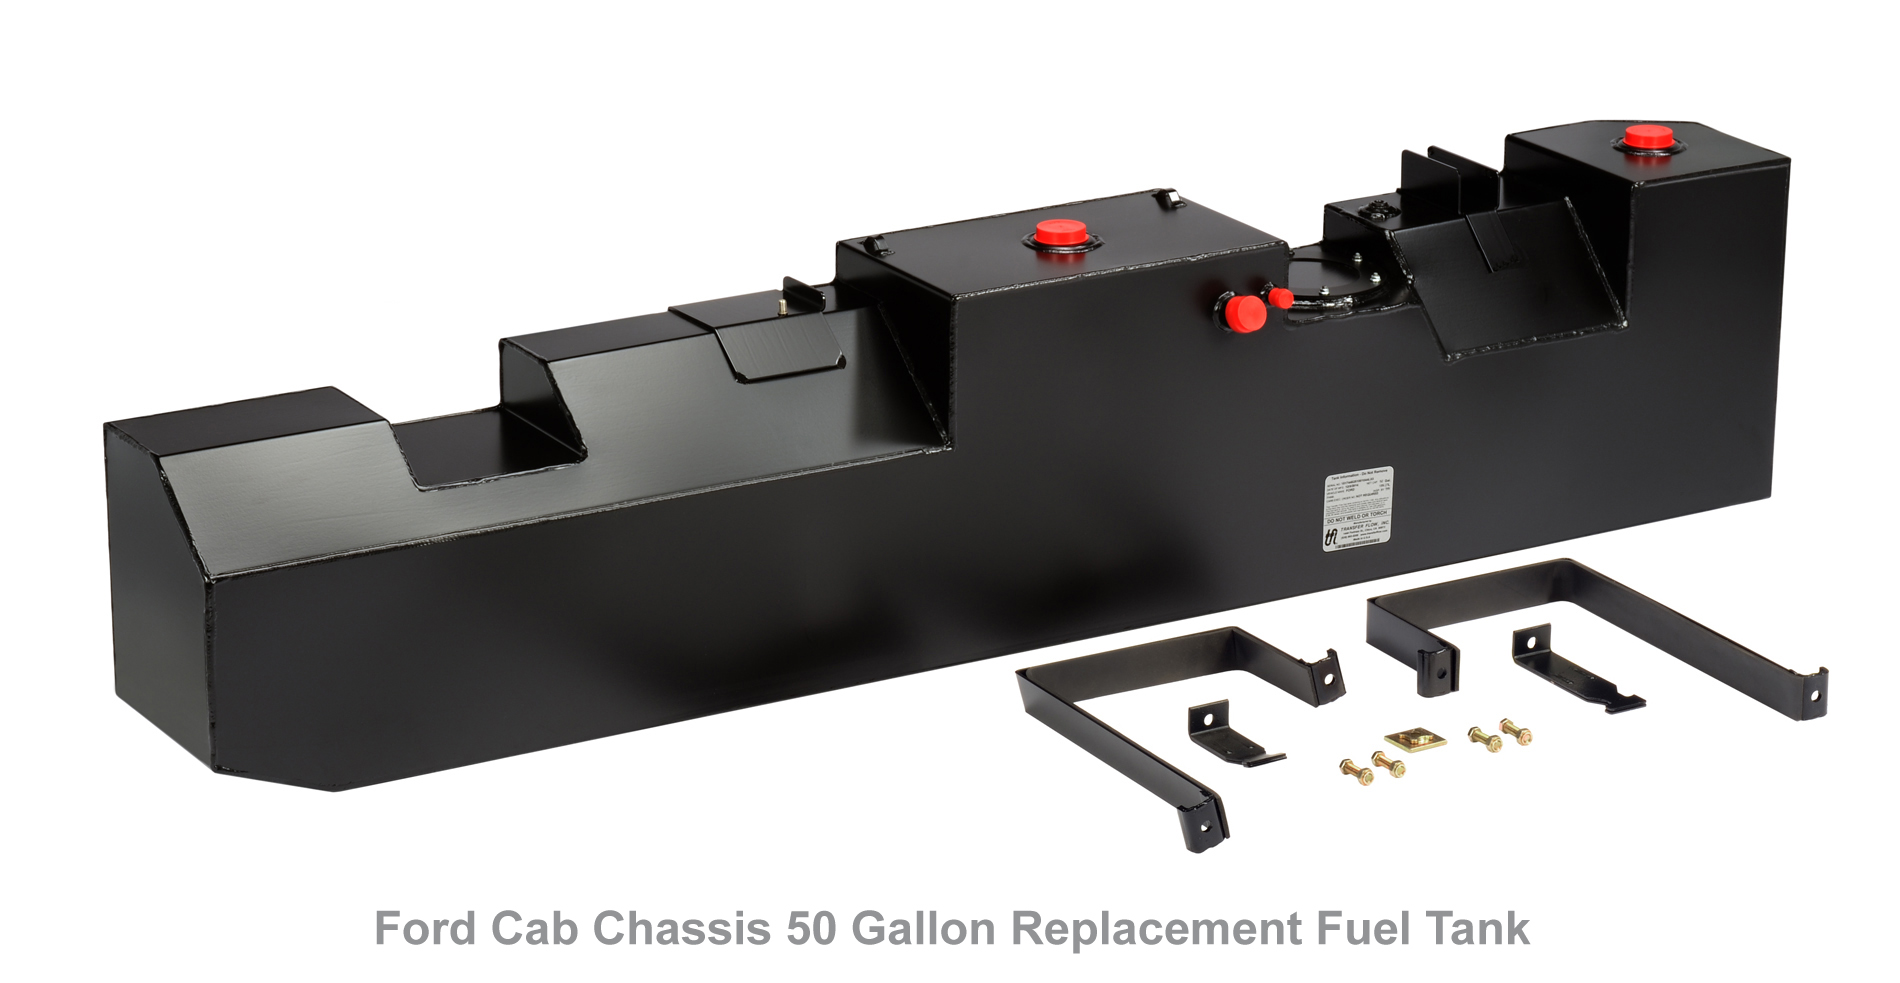 All Chevy 95 chevy 3500 diesel : Transfer Flow, Inc. - Aftermarket Fuel Tank Systems